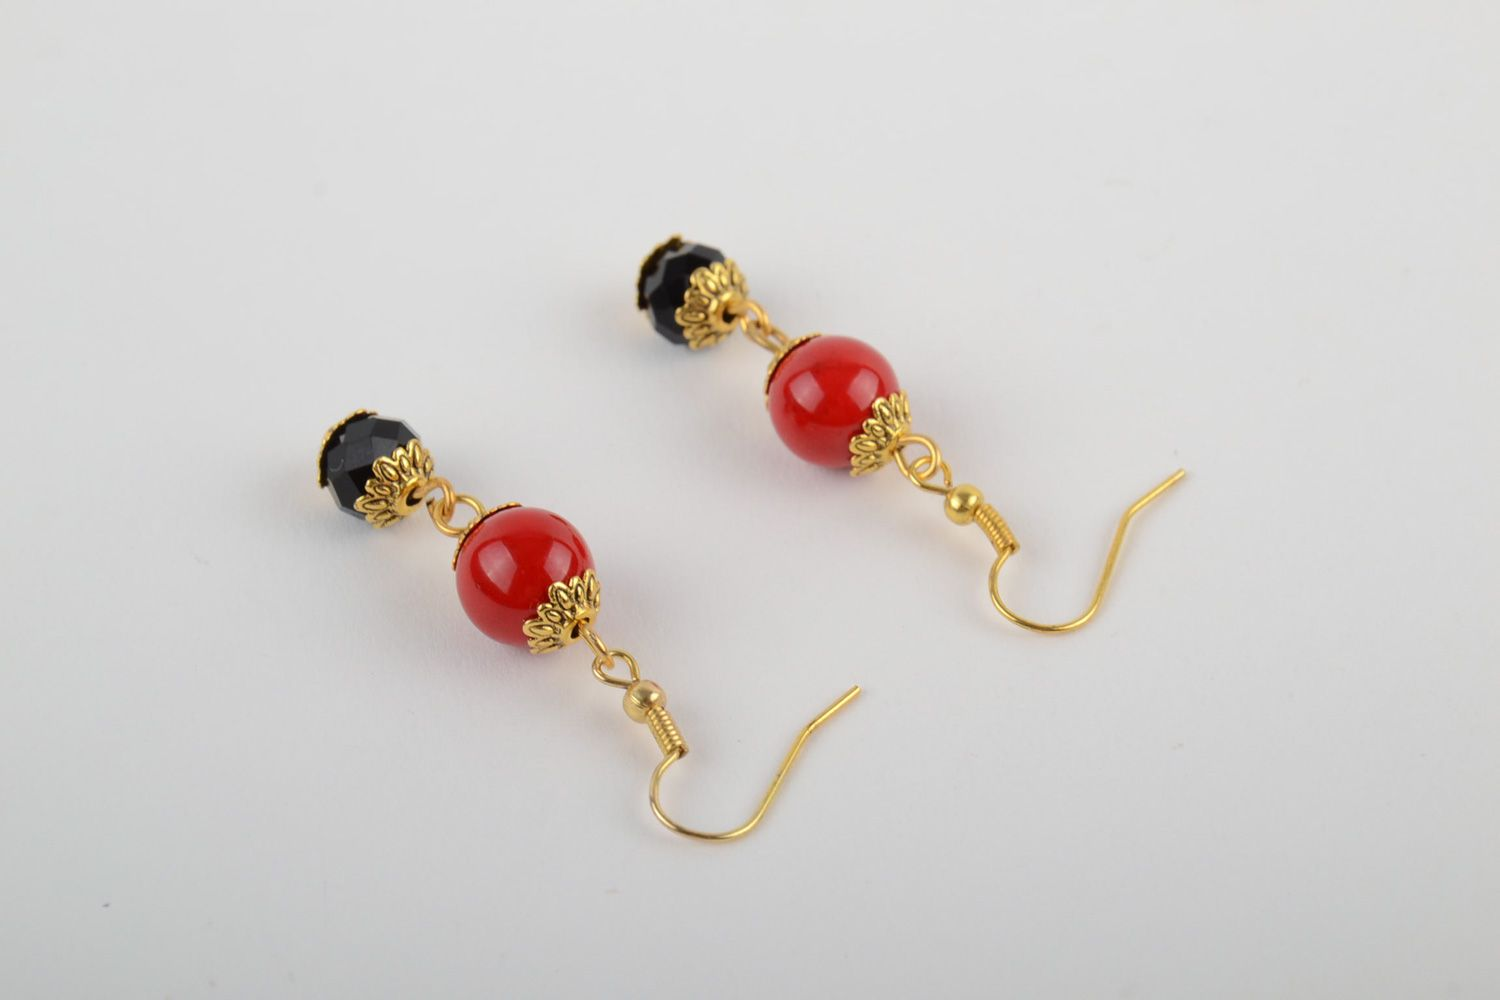 Handmade dangle earrings with artificial coral and faceted beads red and black photo 3